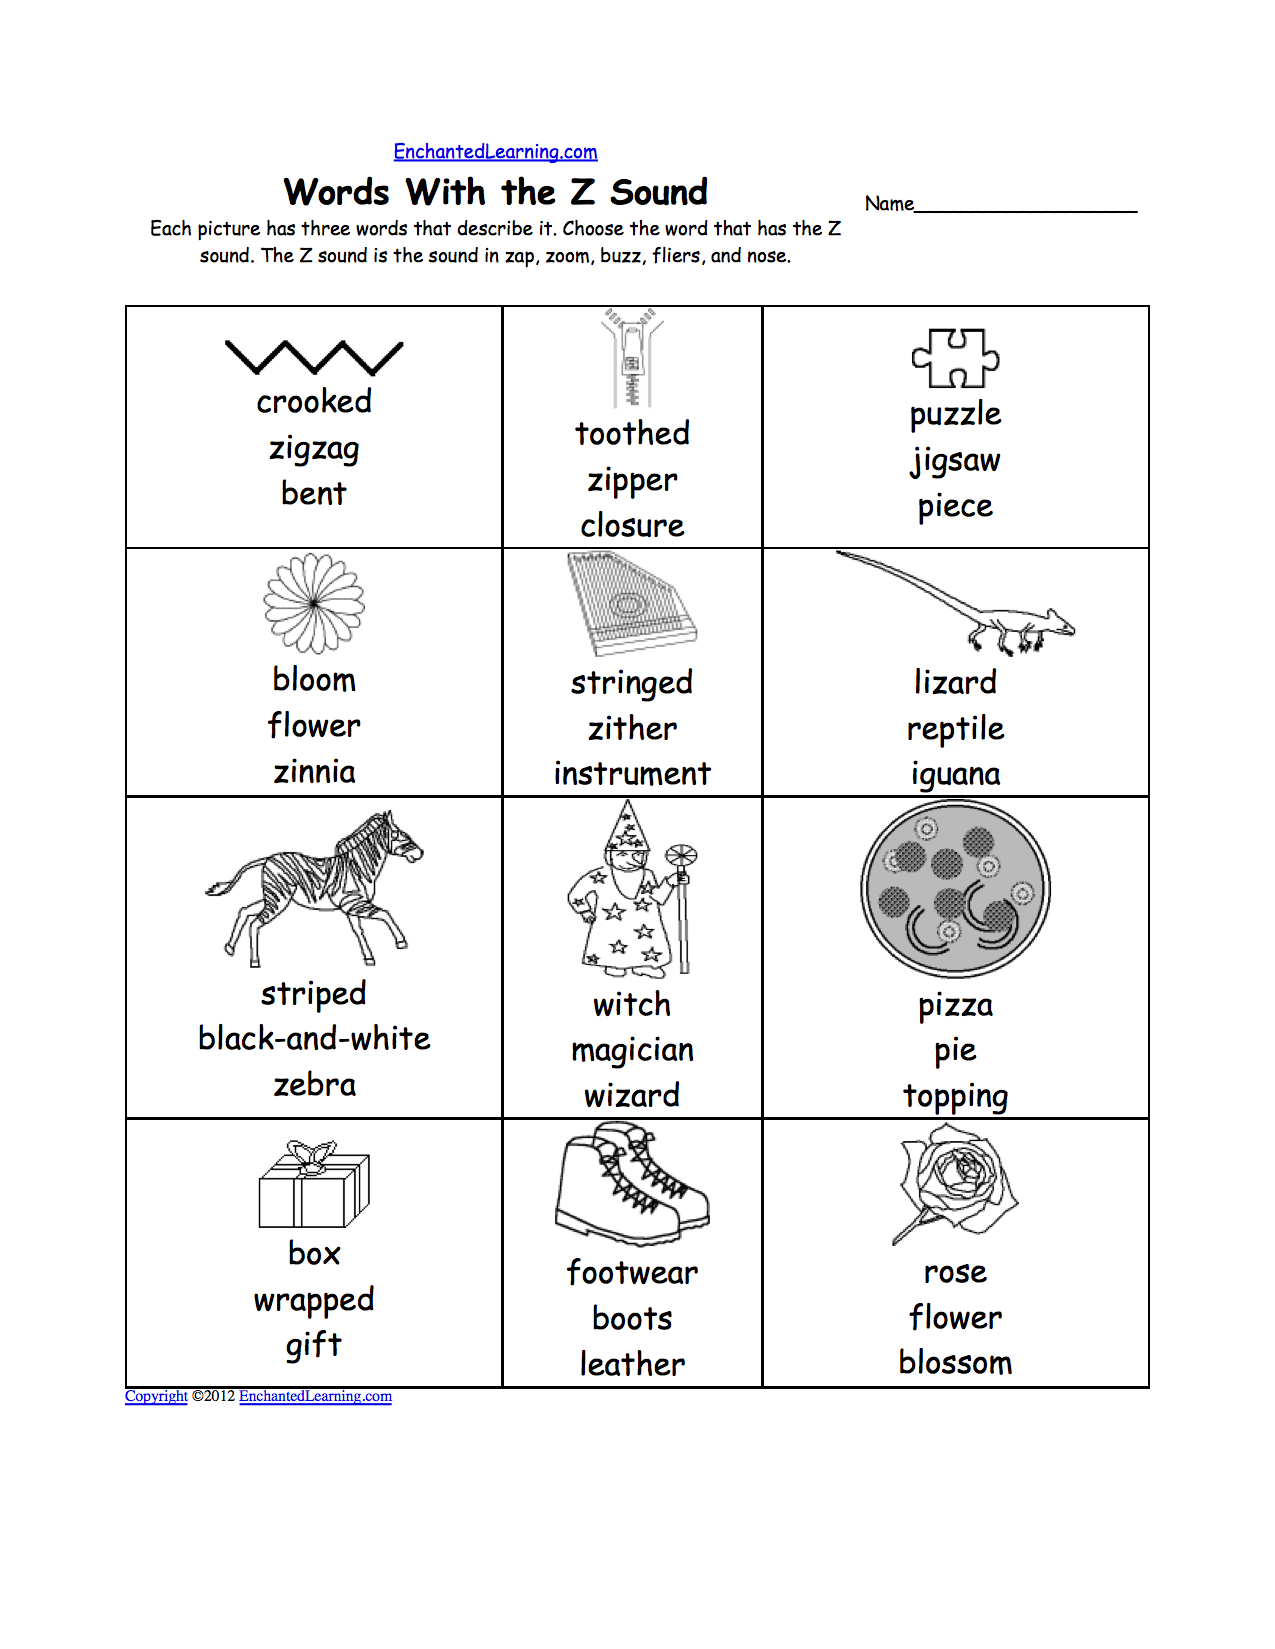 Weirdmailus  Gorgeous Phonics Worksheets Multiple Choice Worksheets To Print  With Extraordinary Phonics Worksheets Multiple Choice Worksheets To Print  Enchantedlearningcom With Lovely Th Grade Fraction Worksheets Also Present Tense Of The Verb Worksheets In Addition Pronoun Worksheets Rd Grade And Neighbourhood Places Worksheet As Well As First Aid Worksheet Answers Additionally Multi Step Multiplication And Division Word Problems Worksheets From Enchantedlearningcom With Weirdmailus  Extraordinary Phonics Worksheets Multiple Choice Worksheets To Print  With Lovely Phonics Worksheets Multiple Choice Worksheets To Print  Enchantedlearningcom And Gorgeous Th Grade Fraction Worksheets Also Present Tense Of The Verb Worksheets In Addition Pronoun Worksheets Rd Grade From Enchantedlearningcom